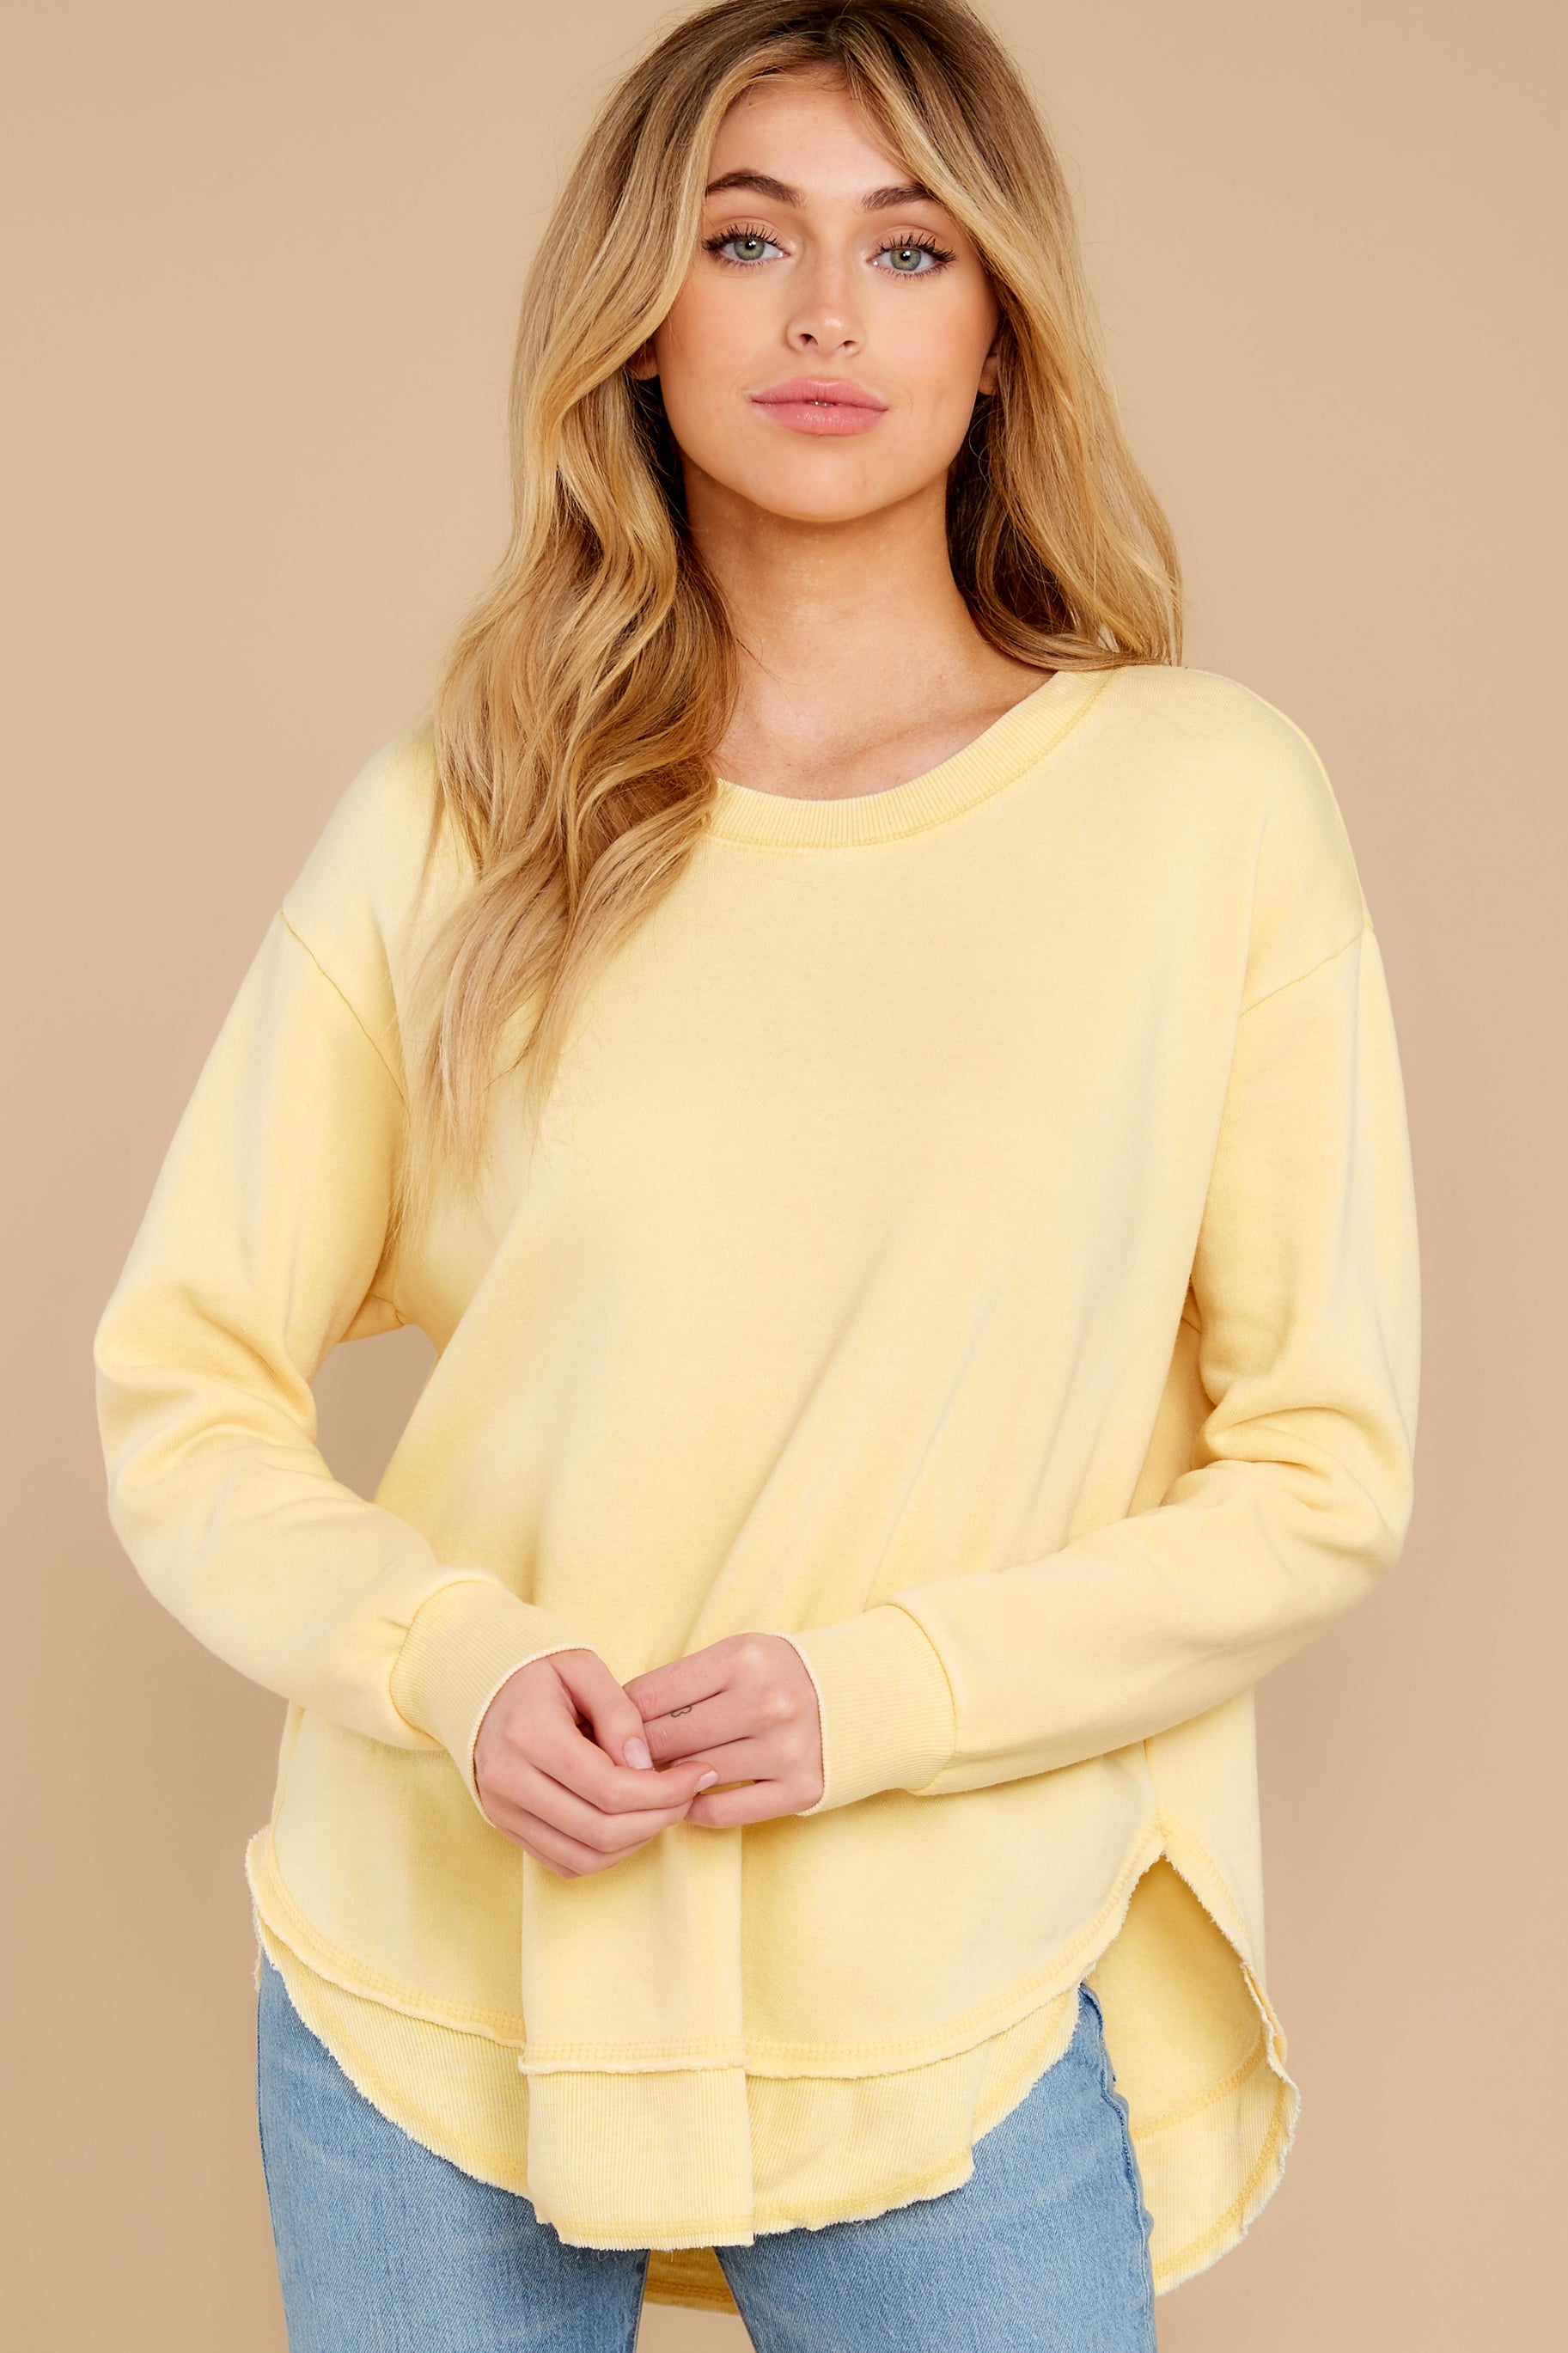 9 Divine Comfort Sunflower Yellow Pullover at reddress.com